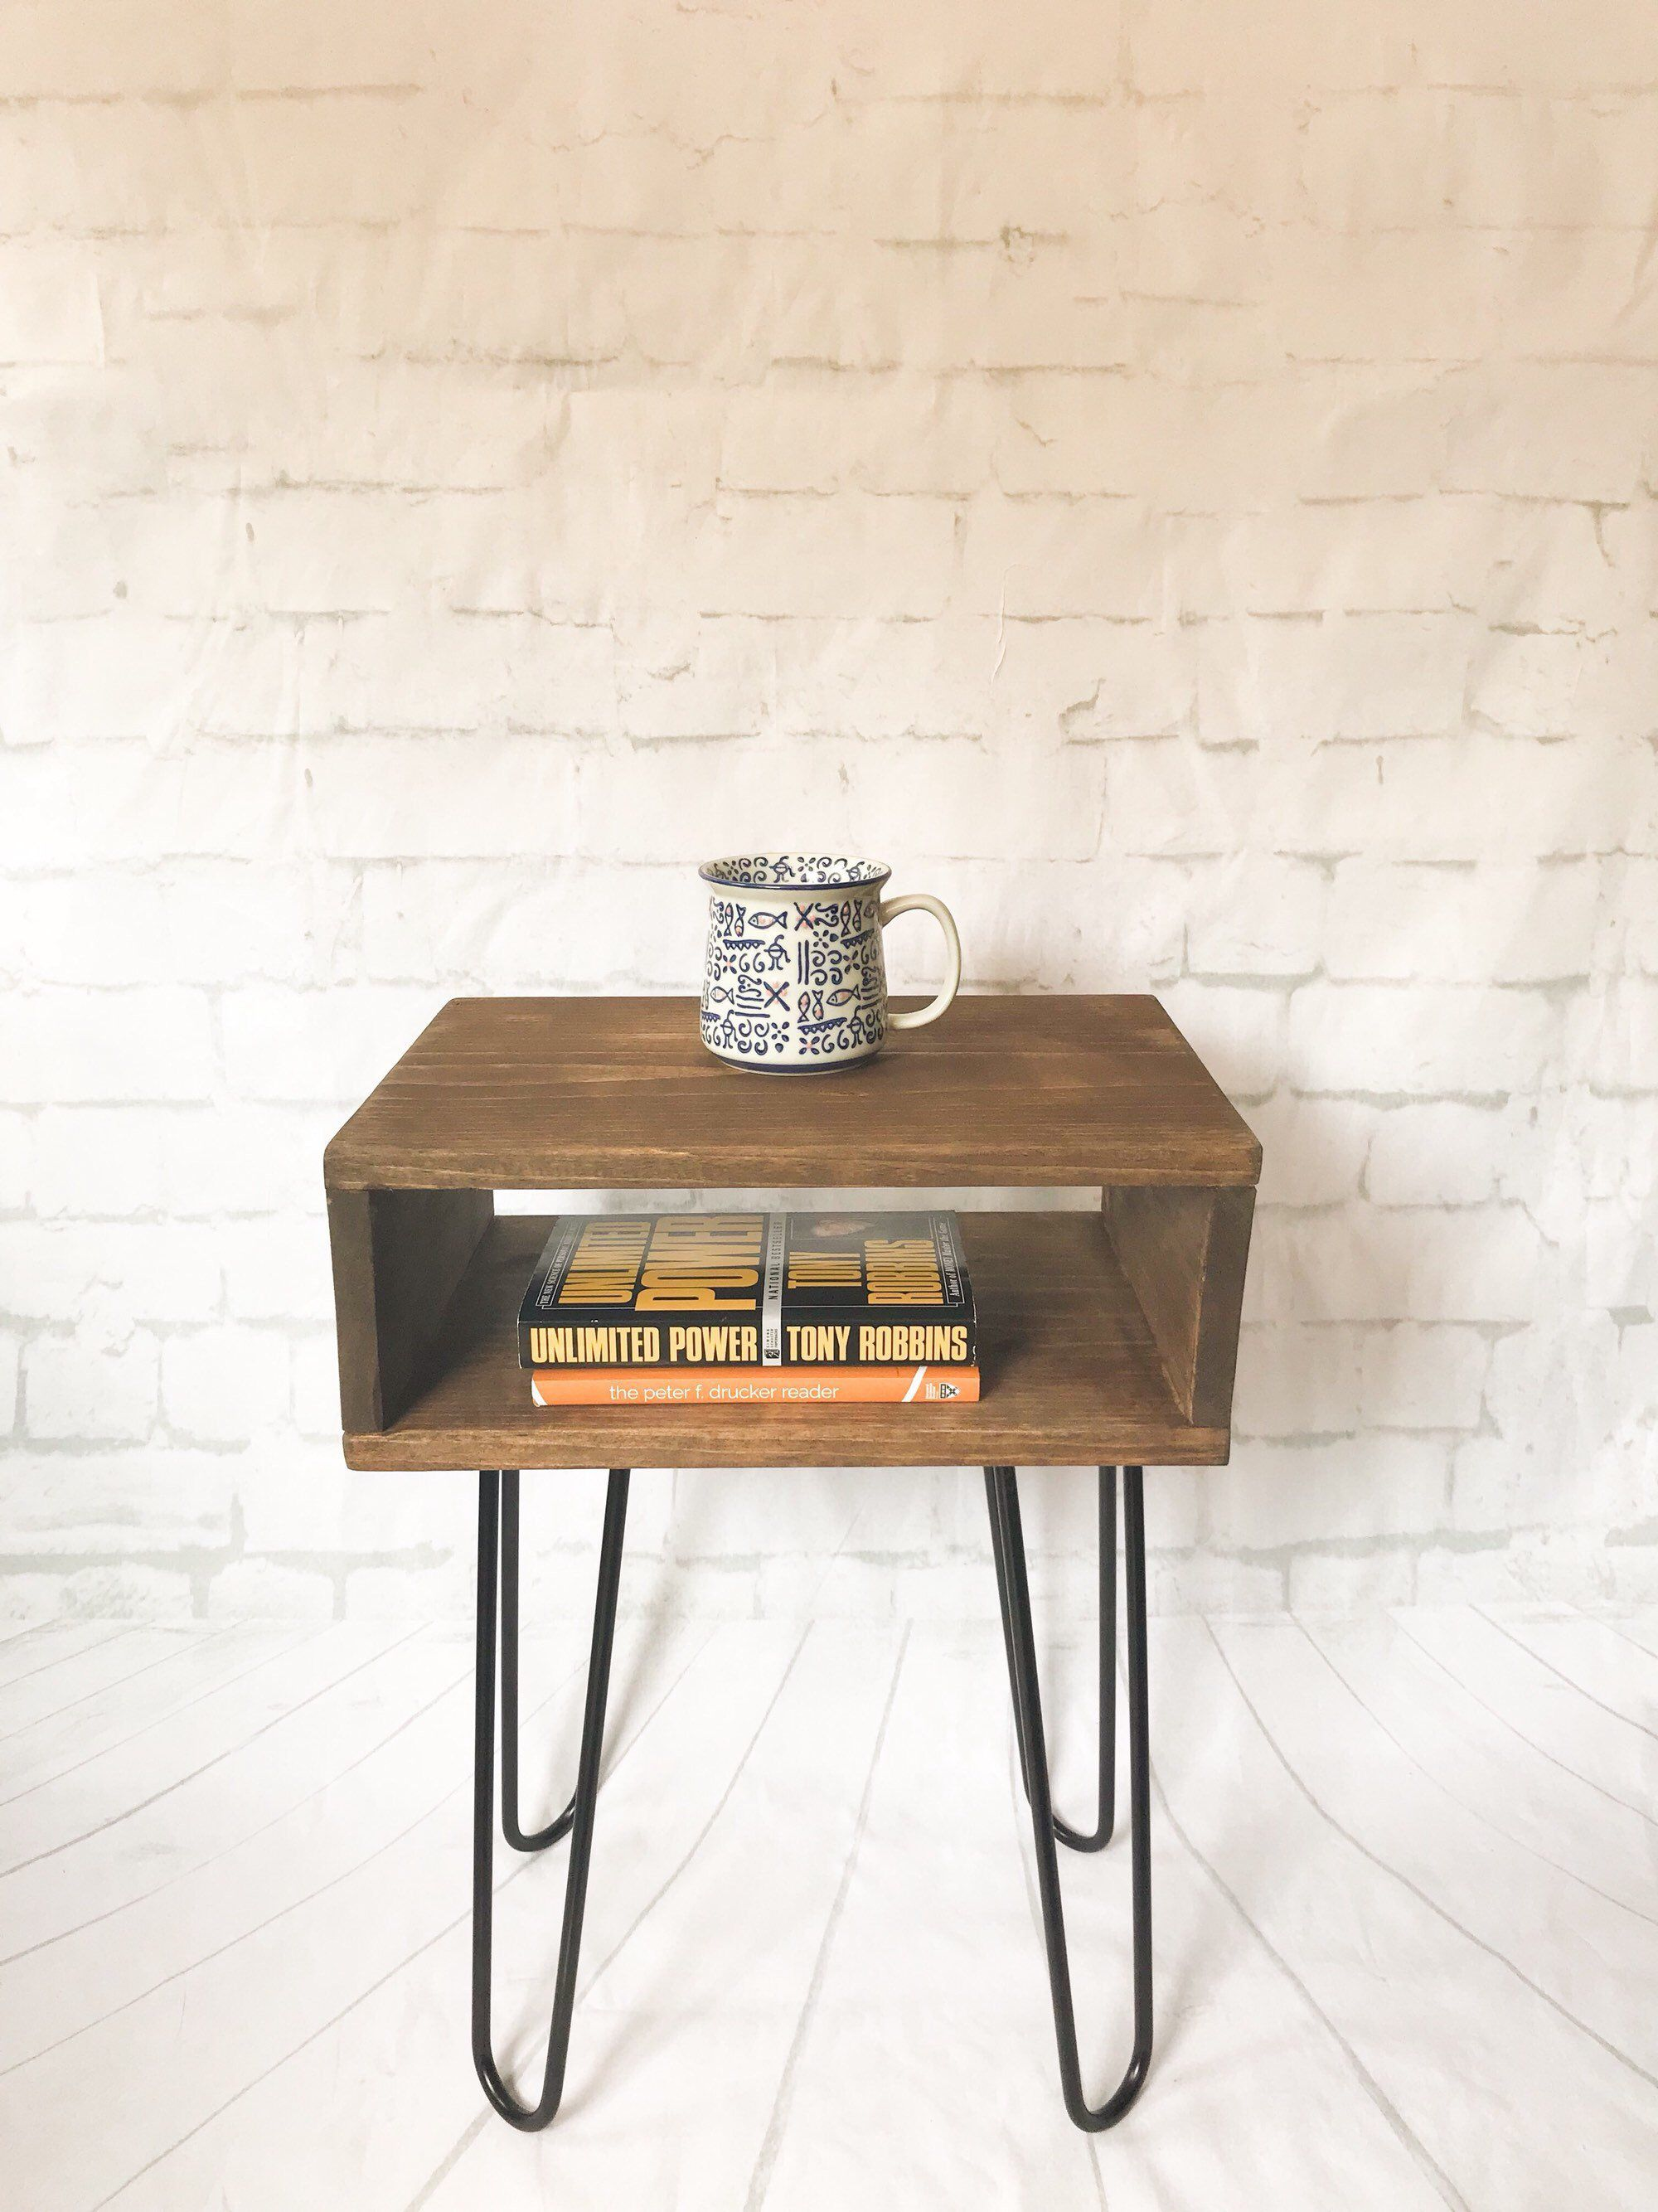 Handmade Mid Century Modern Coffee Or Console Table Wood Etsy Side Table Wood Small End Tables Mid Century Modern Nightstand [ 2668 x 2000 Pixel ]